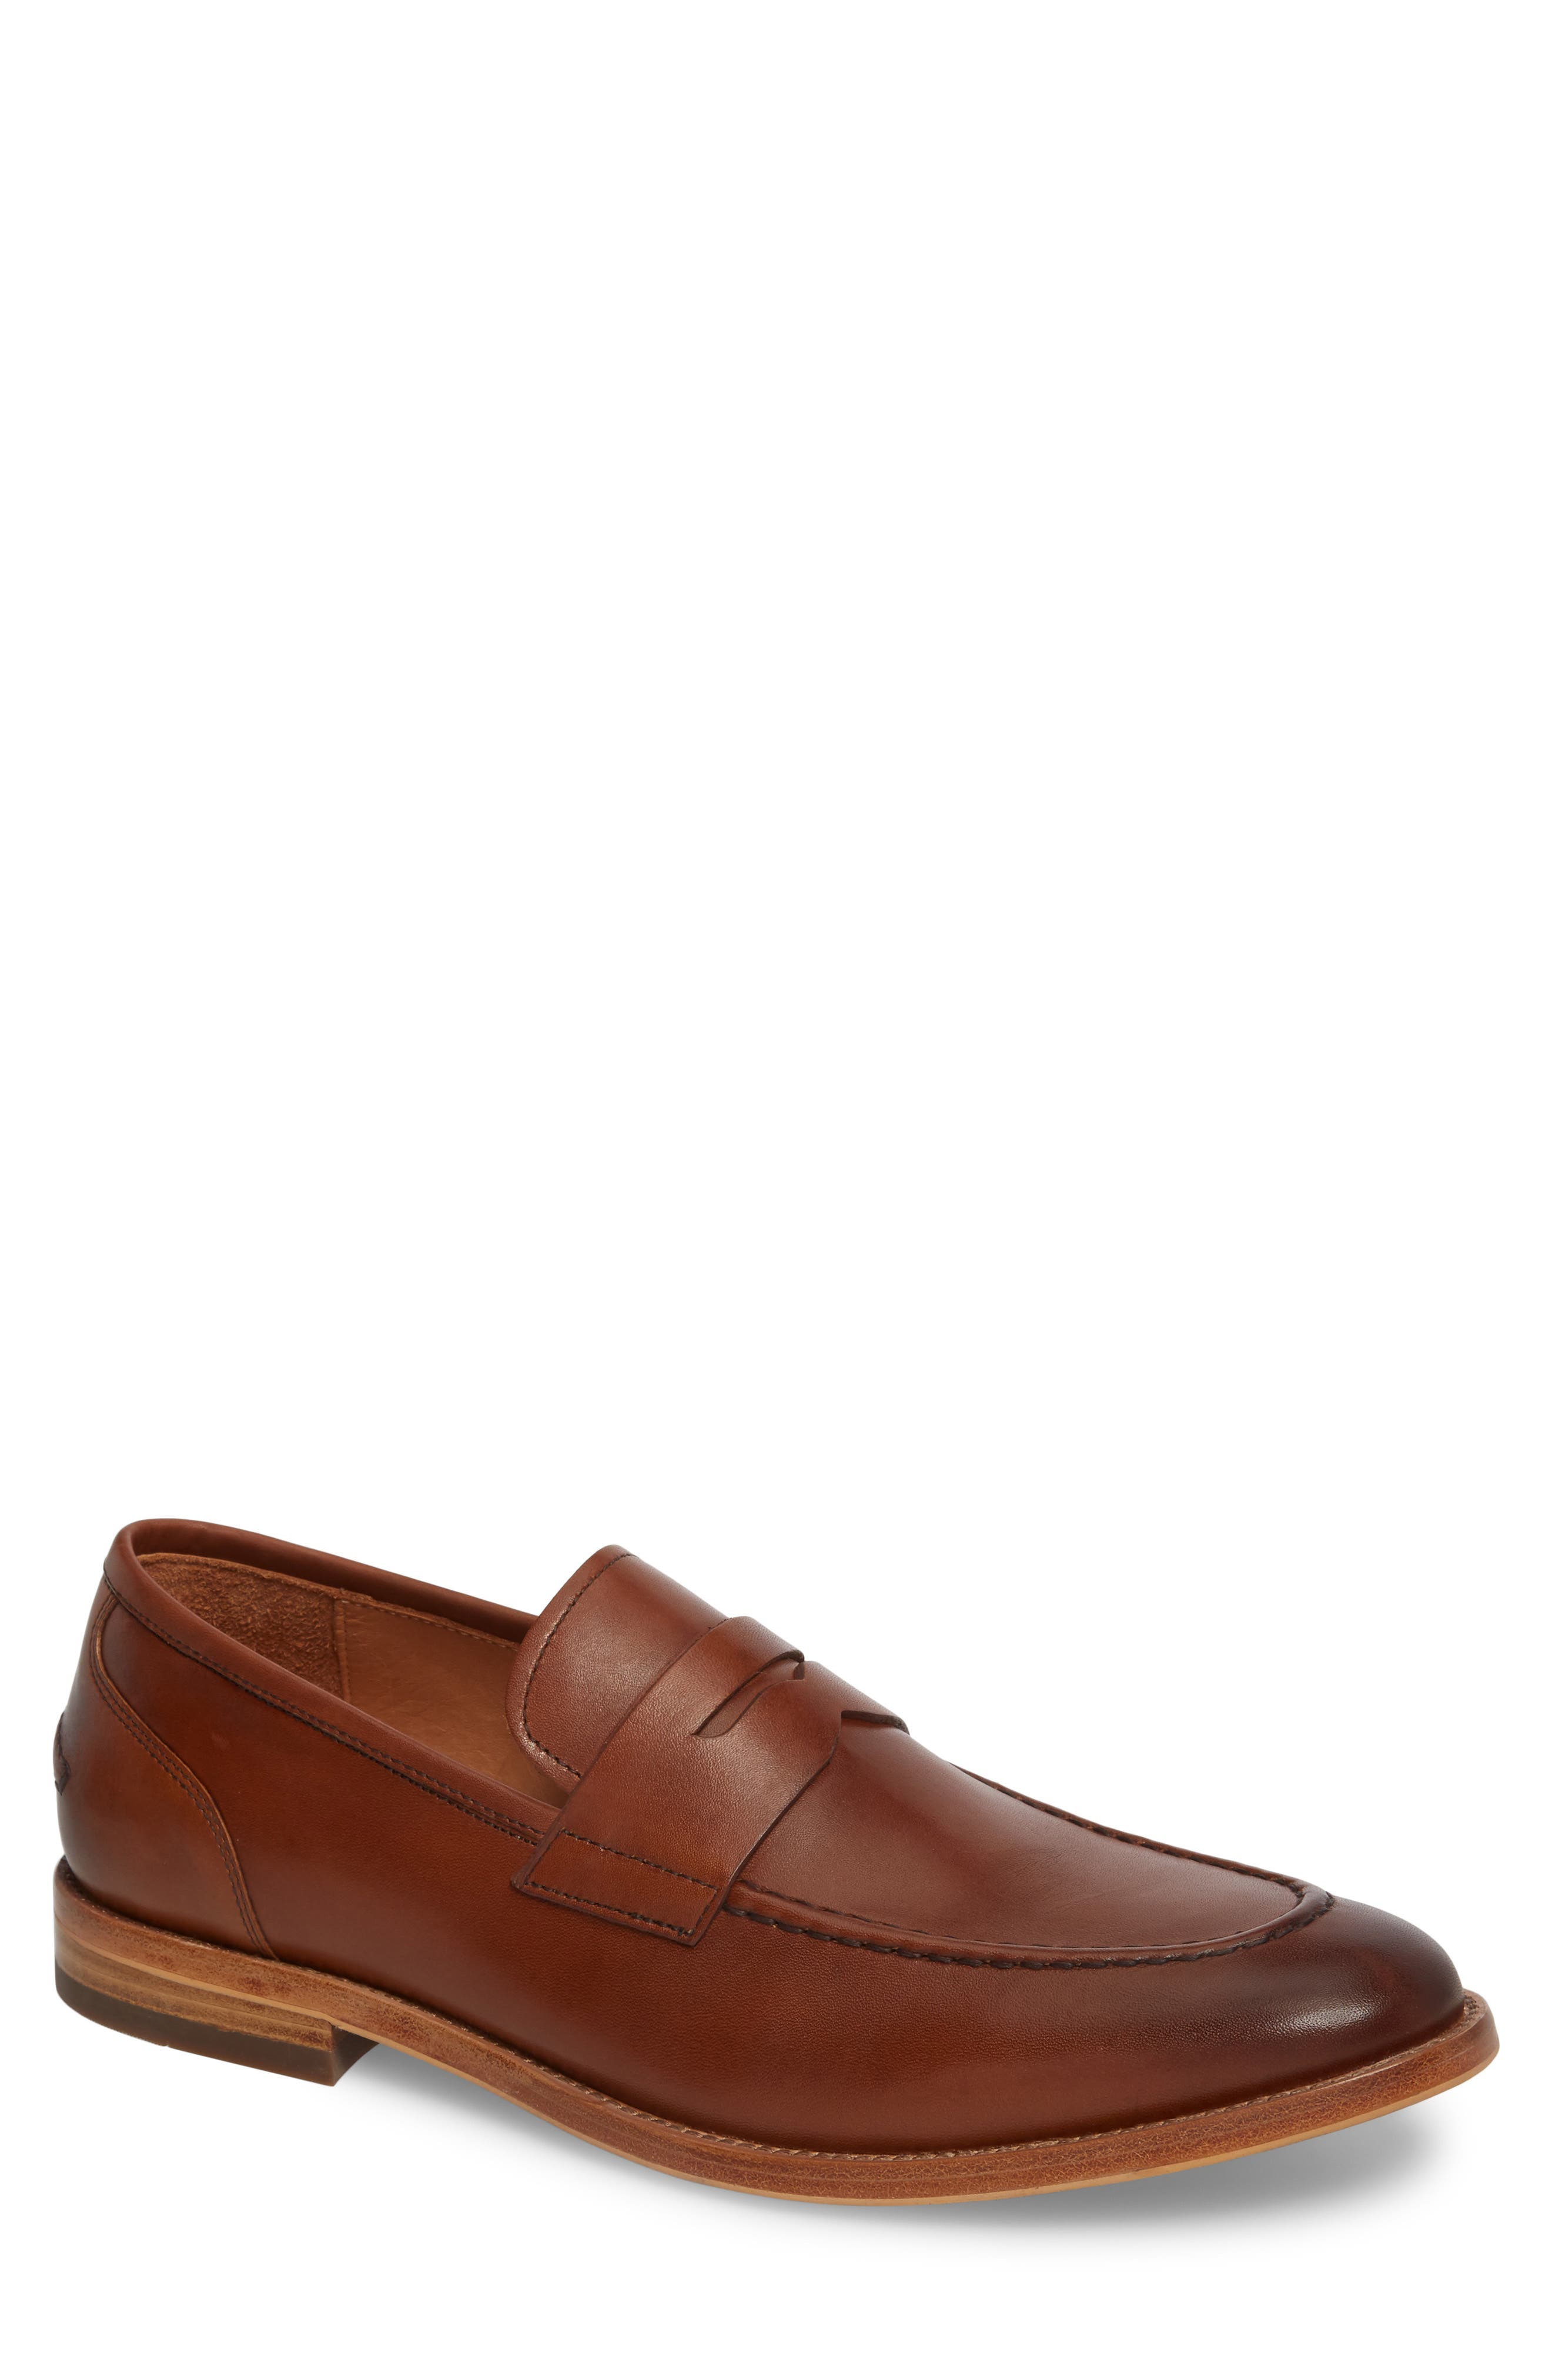 Lucas Loafer,                         Main,                         color, Luggage Leather